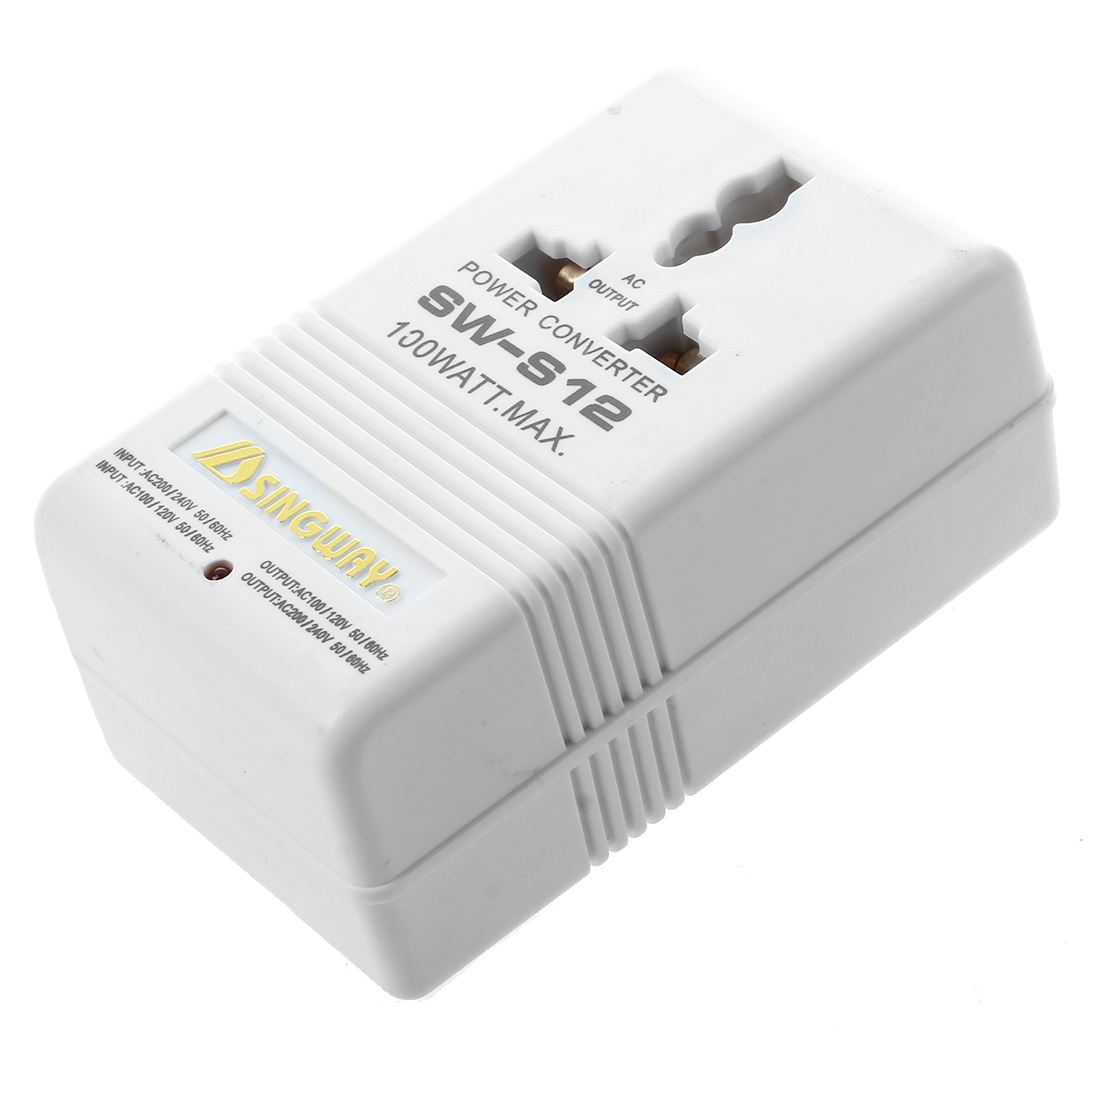 SINGWAY 100W 110V/120V to 220V/240V Step-Up&Down Voltage Converter Transformer Travel White 1000w 1kva 1kw step down voltage converter transformer 220v 240v to 110v 120v by dhl free shipping